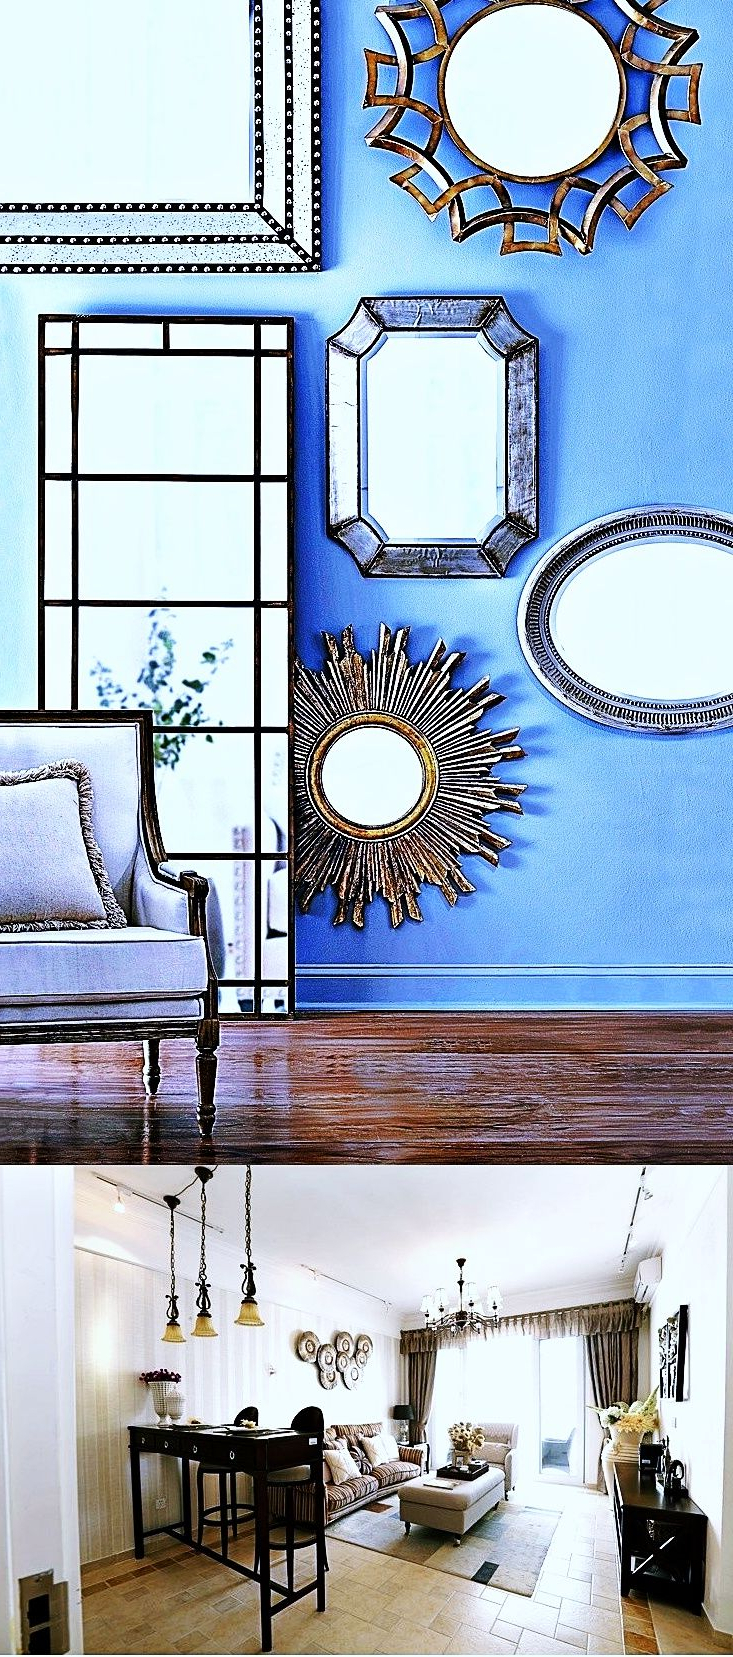 Wall To Wall Mirrors In 2019 With Hinged Wall Mirrors (View 4 of 20)